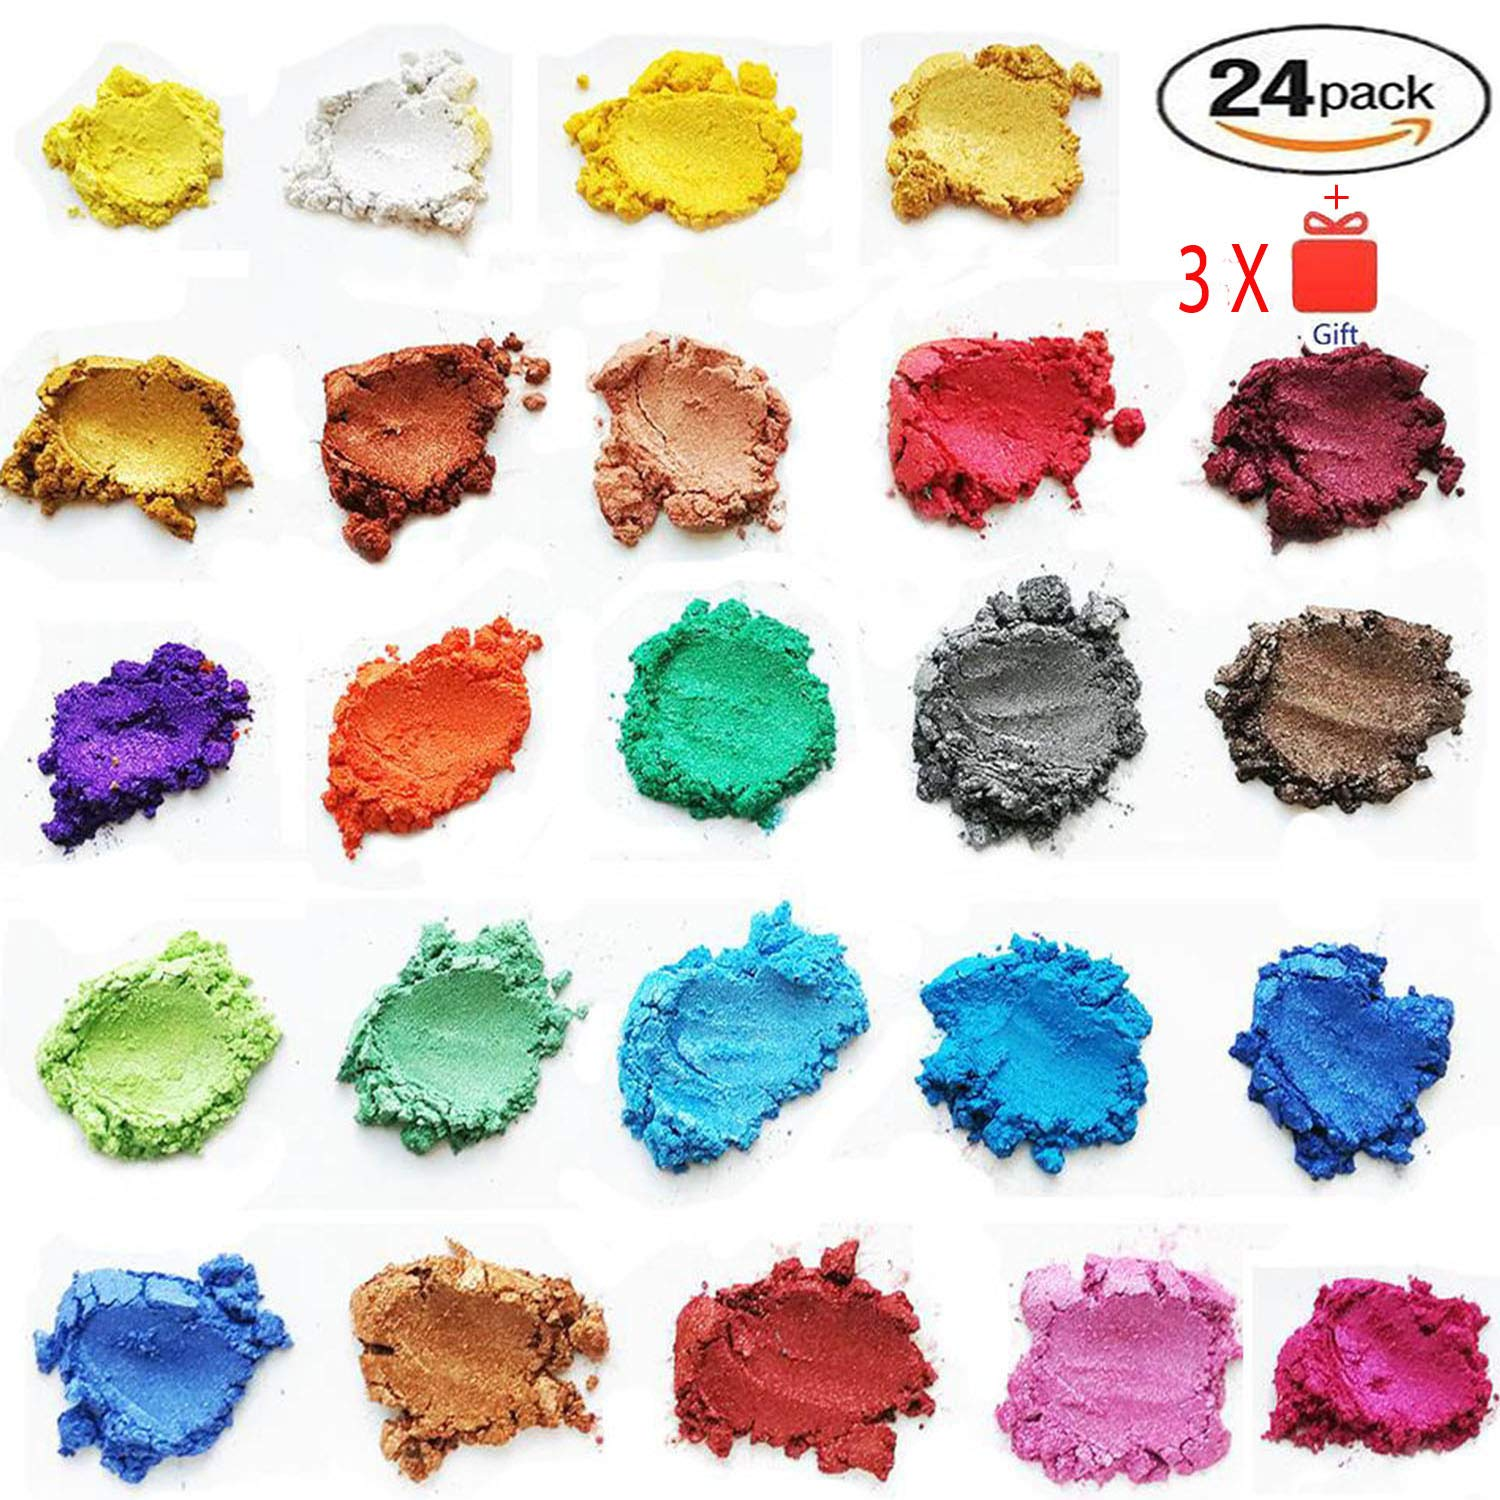 ORAK [24 Assorted Colors] Cosmetic Grade Natural Mica Powder Pigment Set For Bath Bomb, Soap, Epoxy, Resin, and Slime Making - Non Toxic Pearl Color Dyes For Makeup and Nail Art